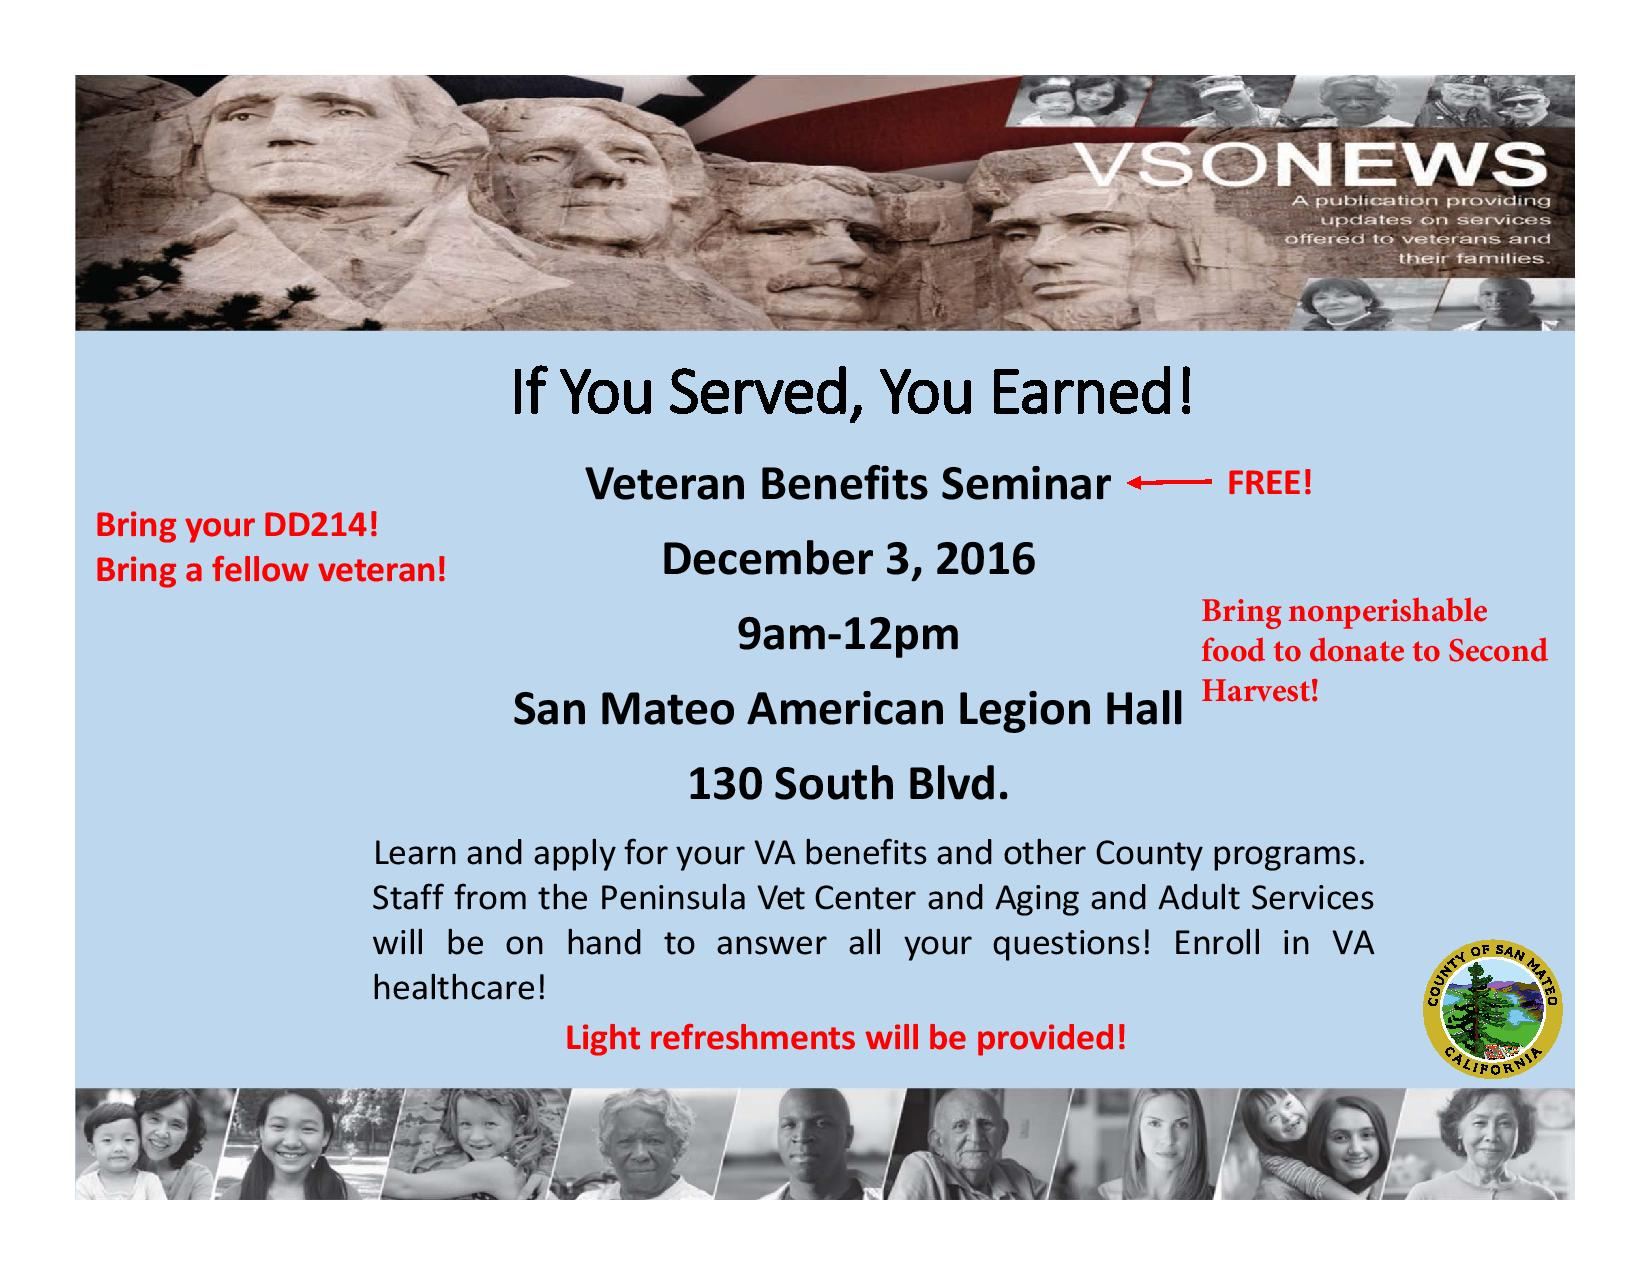 County Veteran Services Benefits Seminar Dec 3 in San Mateo